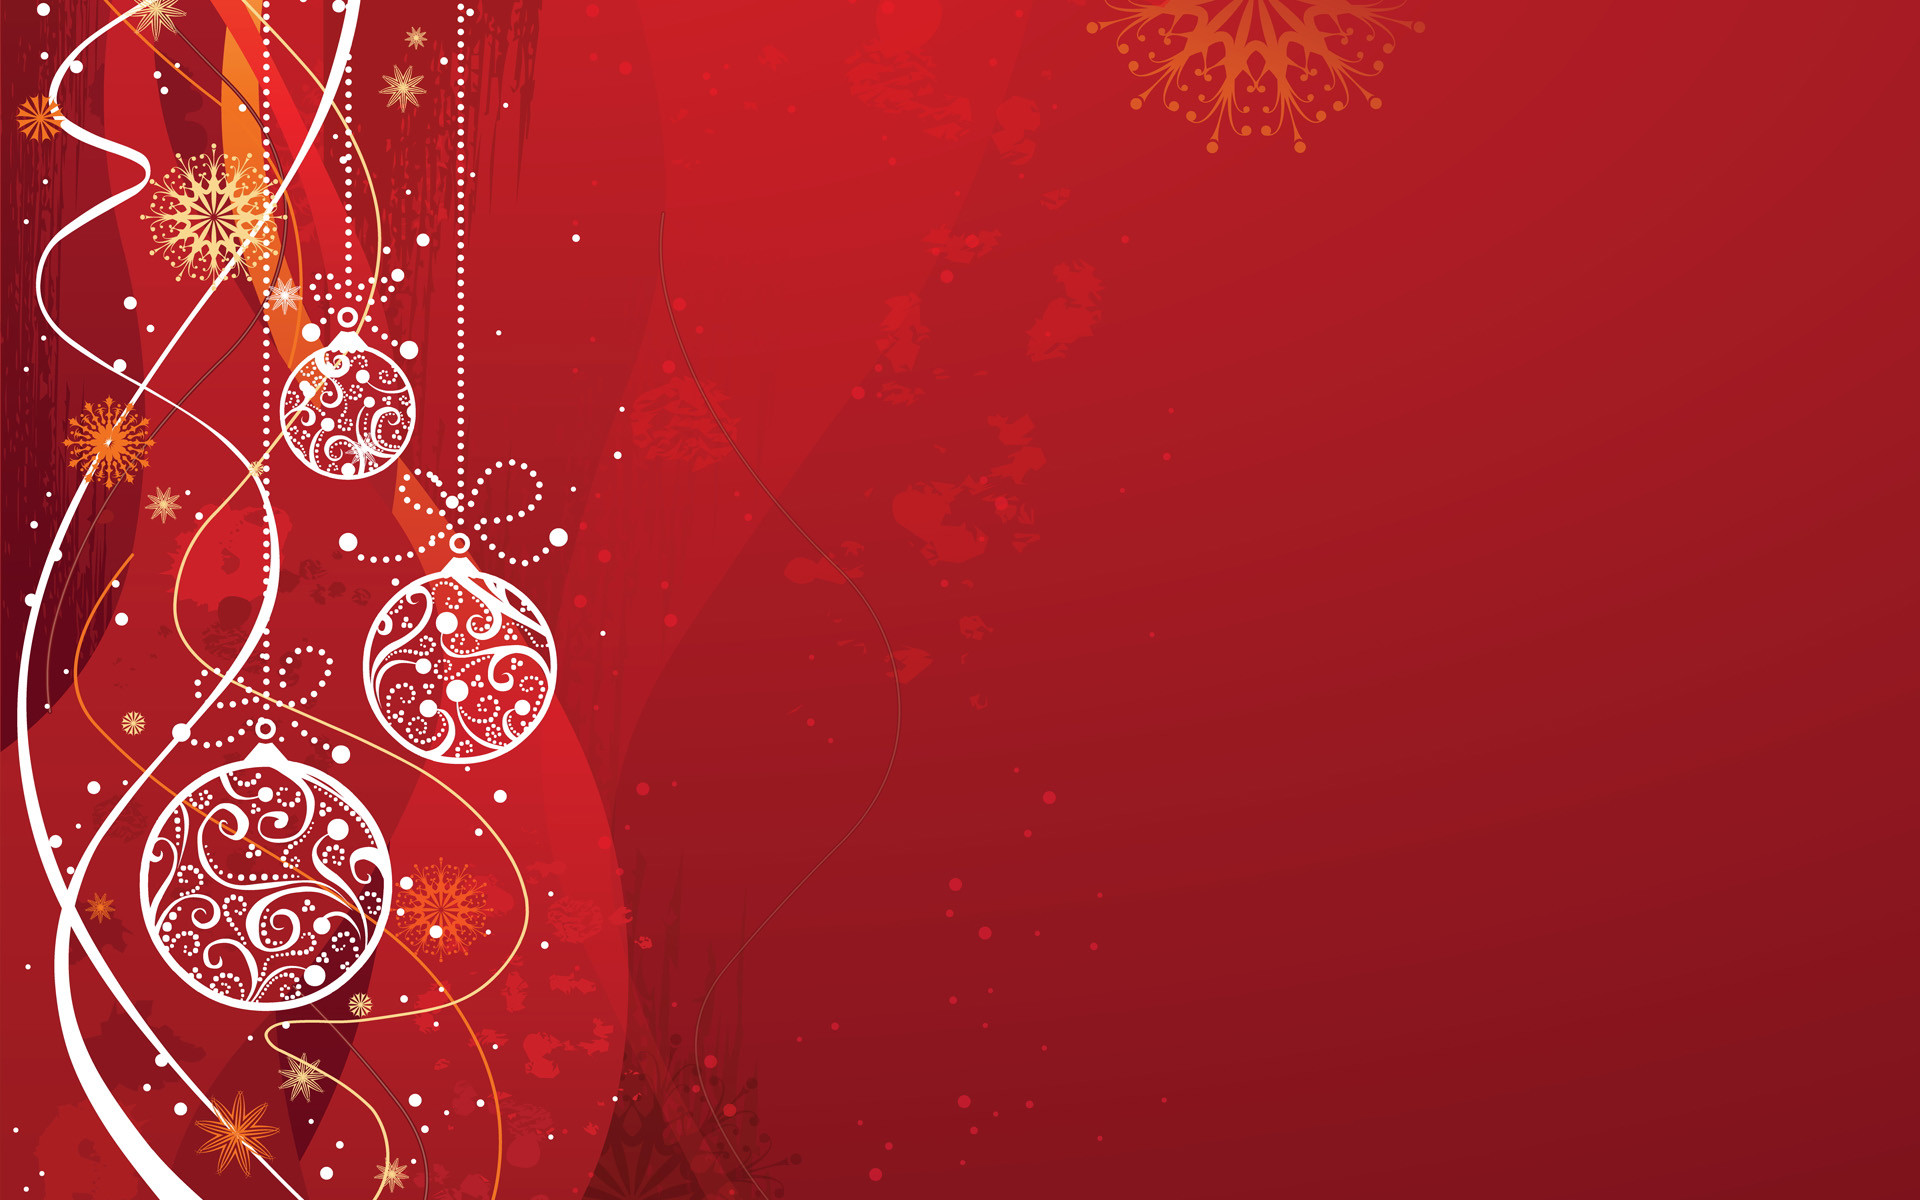 1920x1080 Animated Christmas Desktop Wallpapers